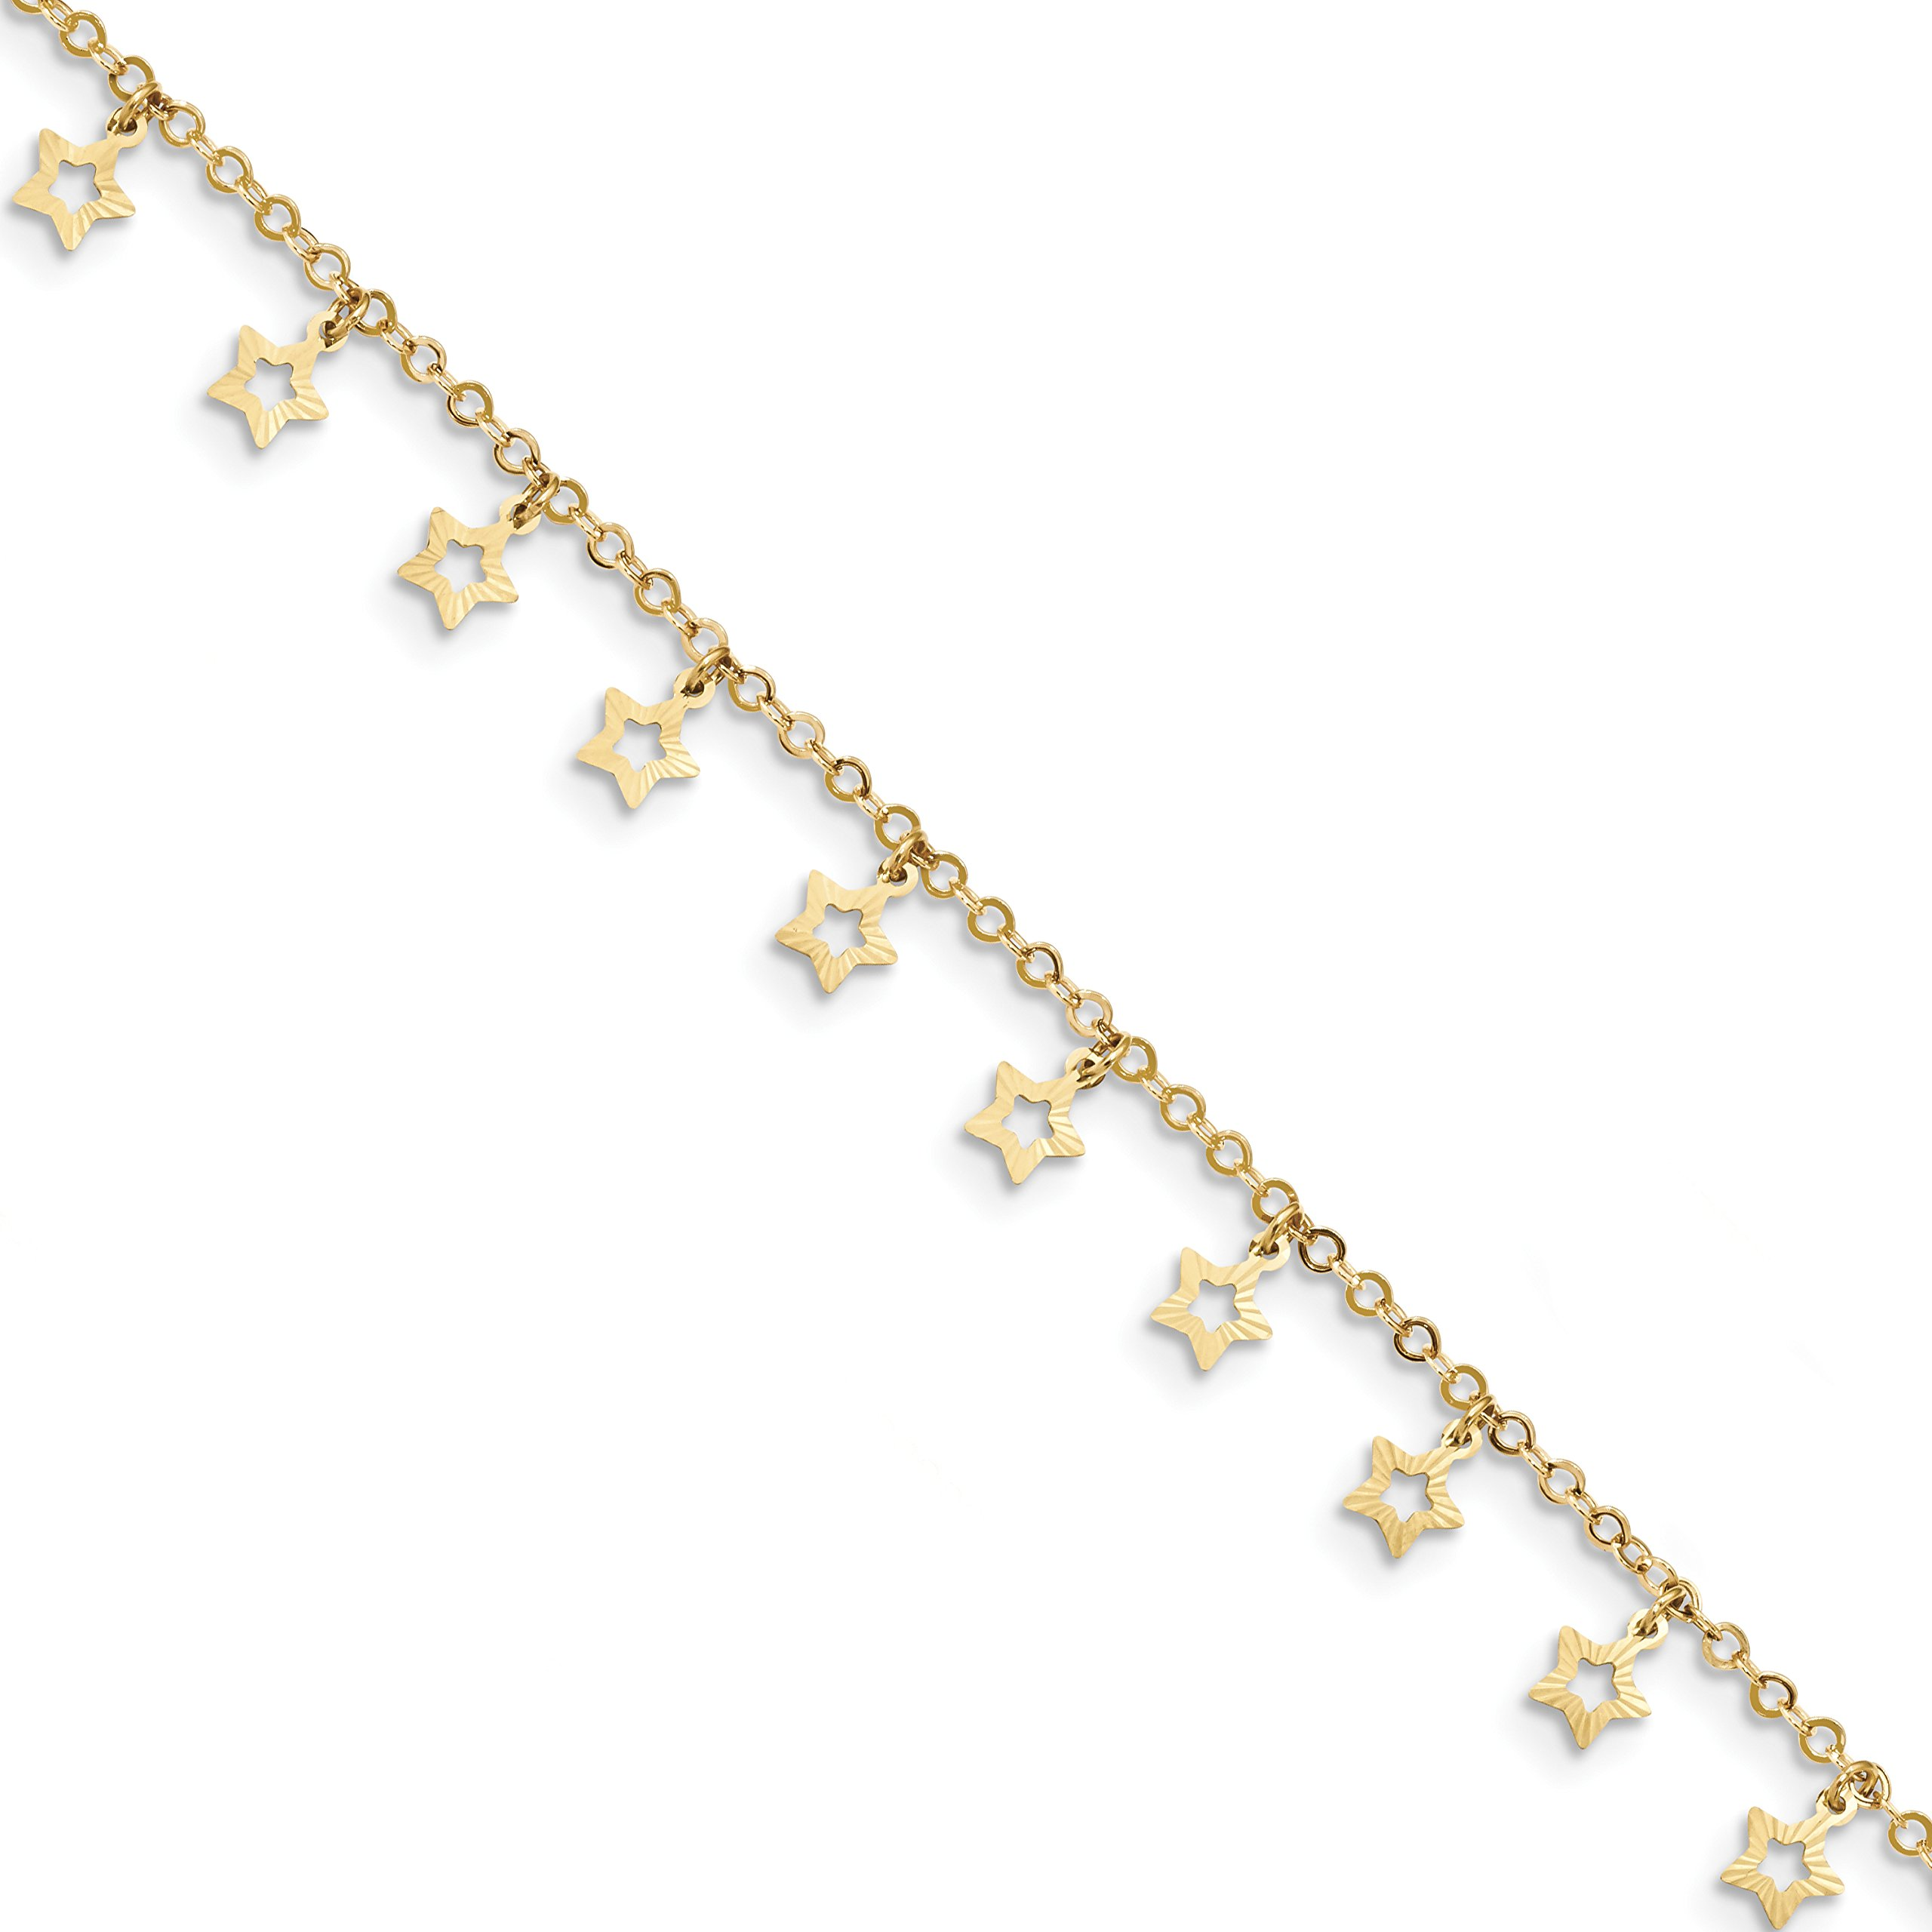 ICE CARATS 14k Yellow Gold Textured Star Anklet Ankle Beach Chain Bracelet Celestial Fine Jewelry Gift Set For Women Heart